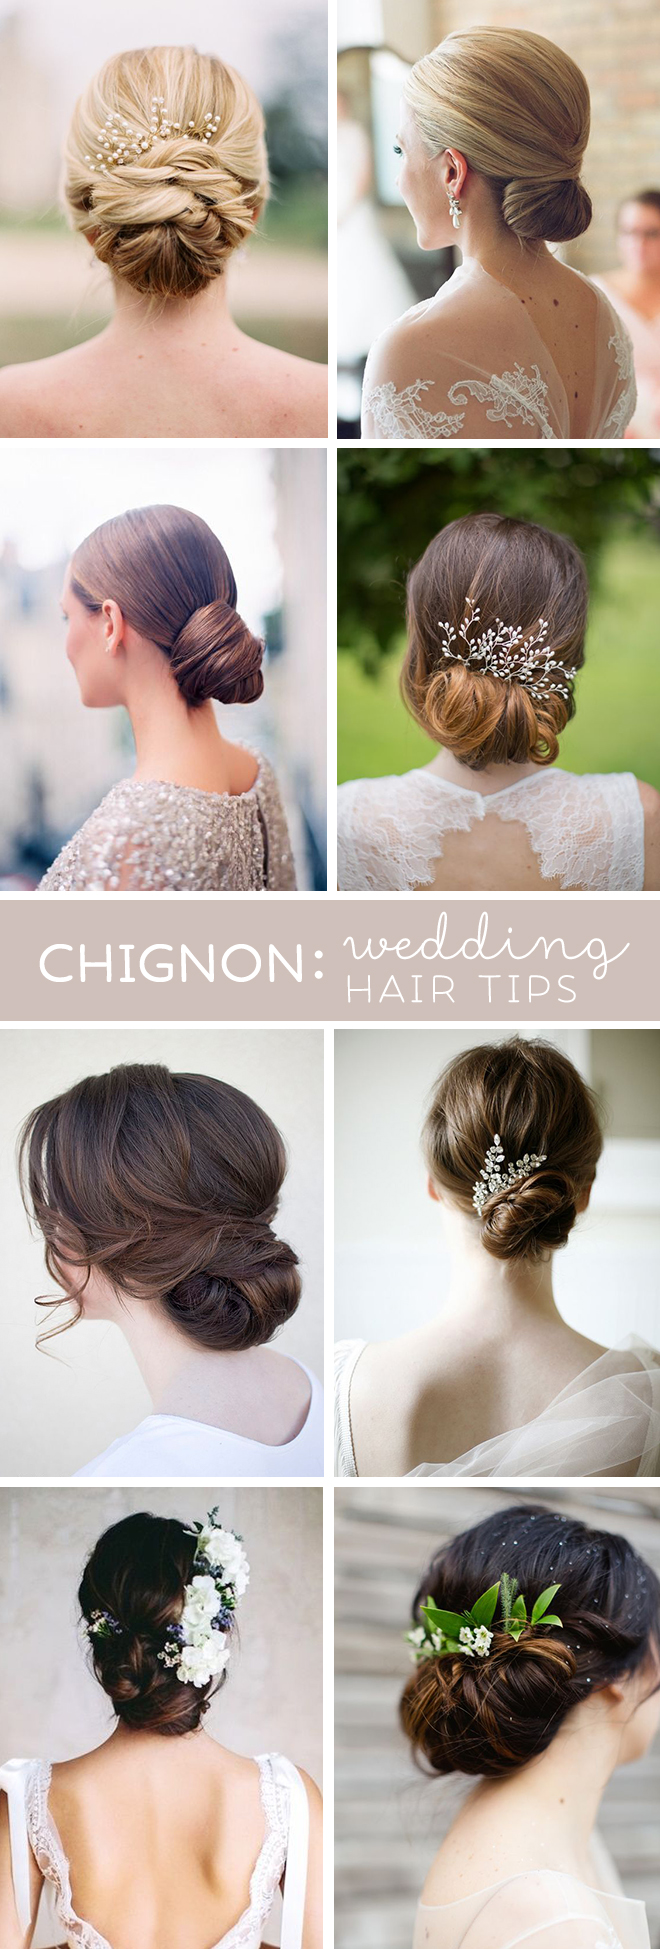 Awesome Tips From A Wedding Hair Professional About Wearing Chignon Or Low Bun For Your